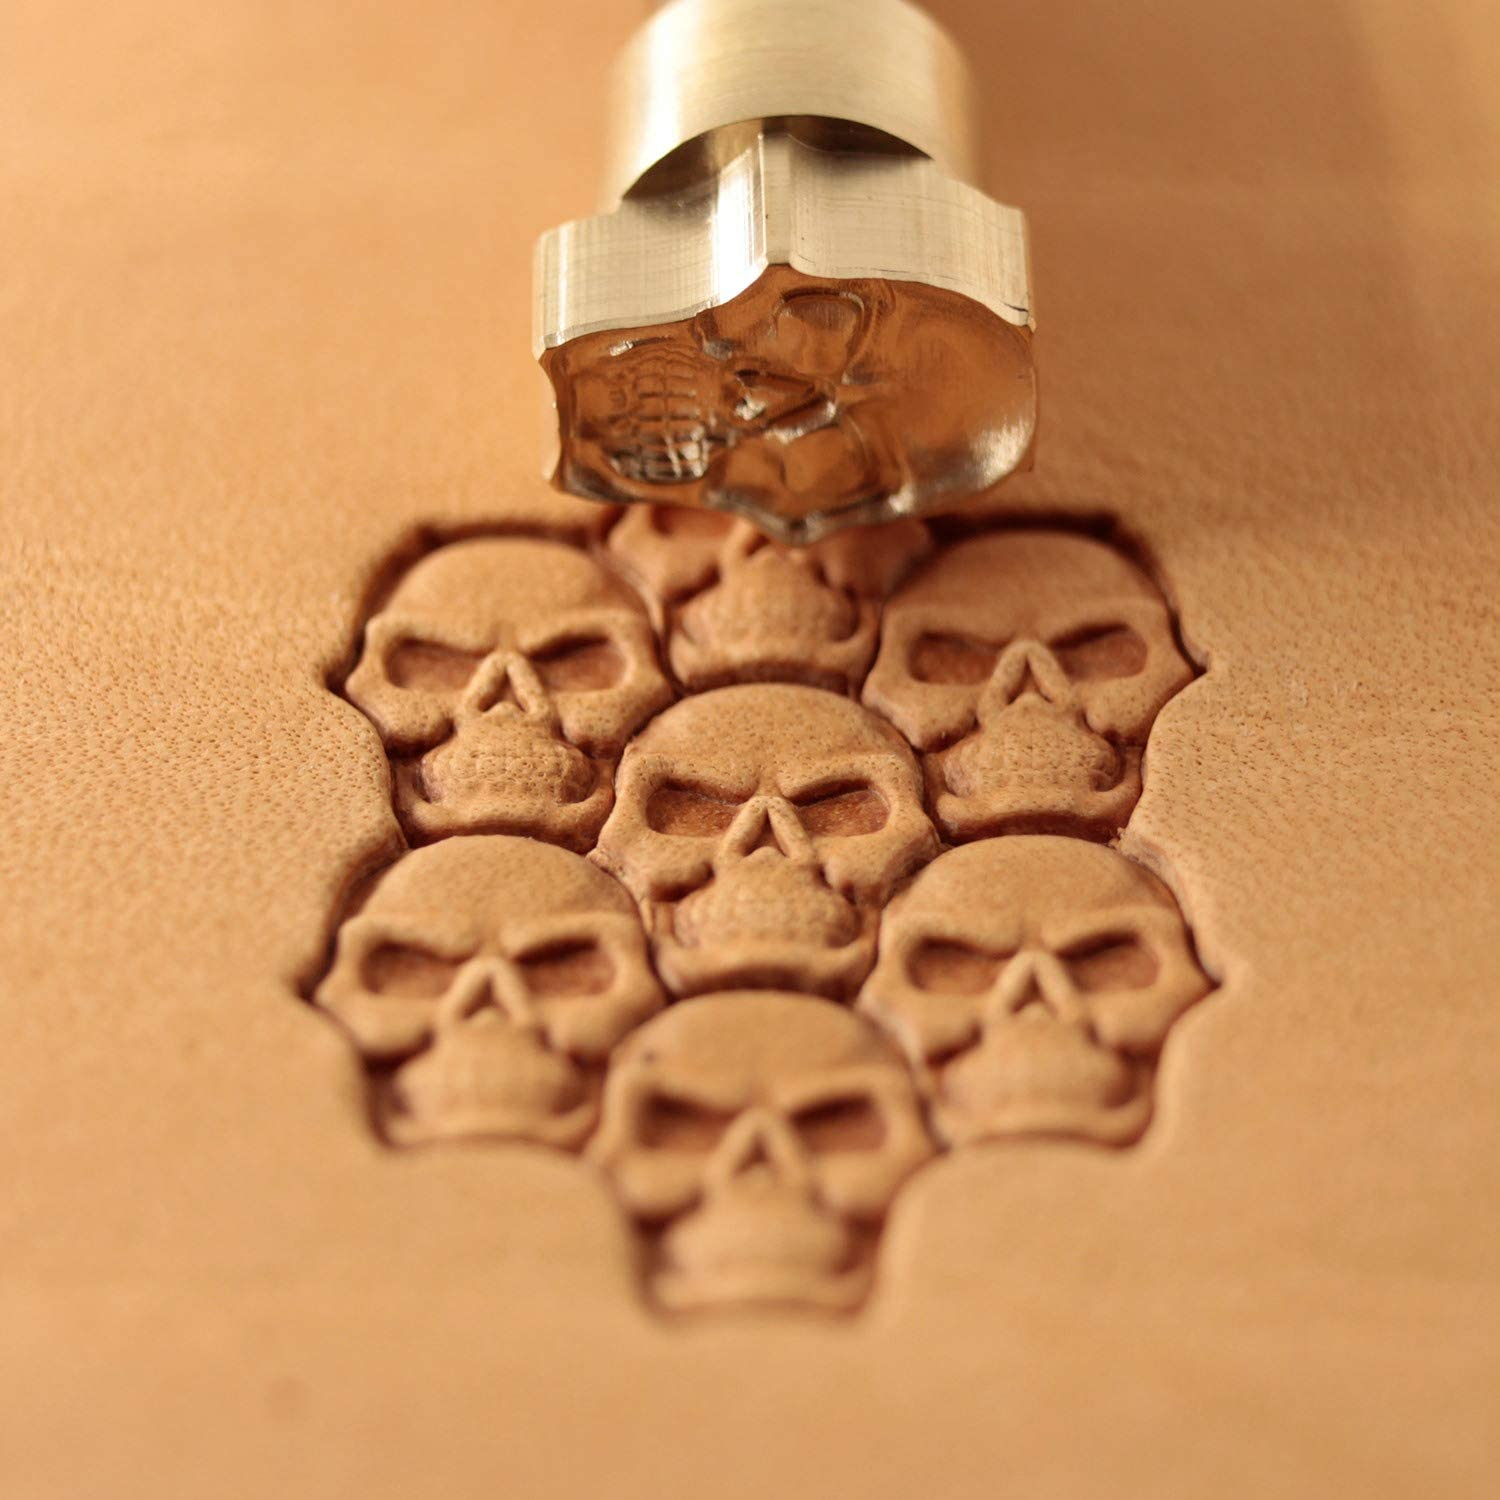 Skull Leather Stamp Tool Stamps Stamping Carving Punches Tools Craft Leathercrafting